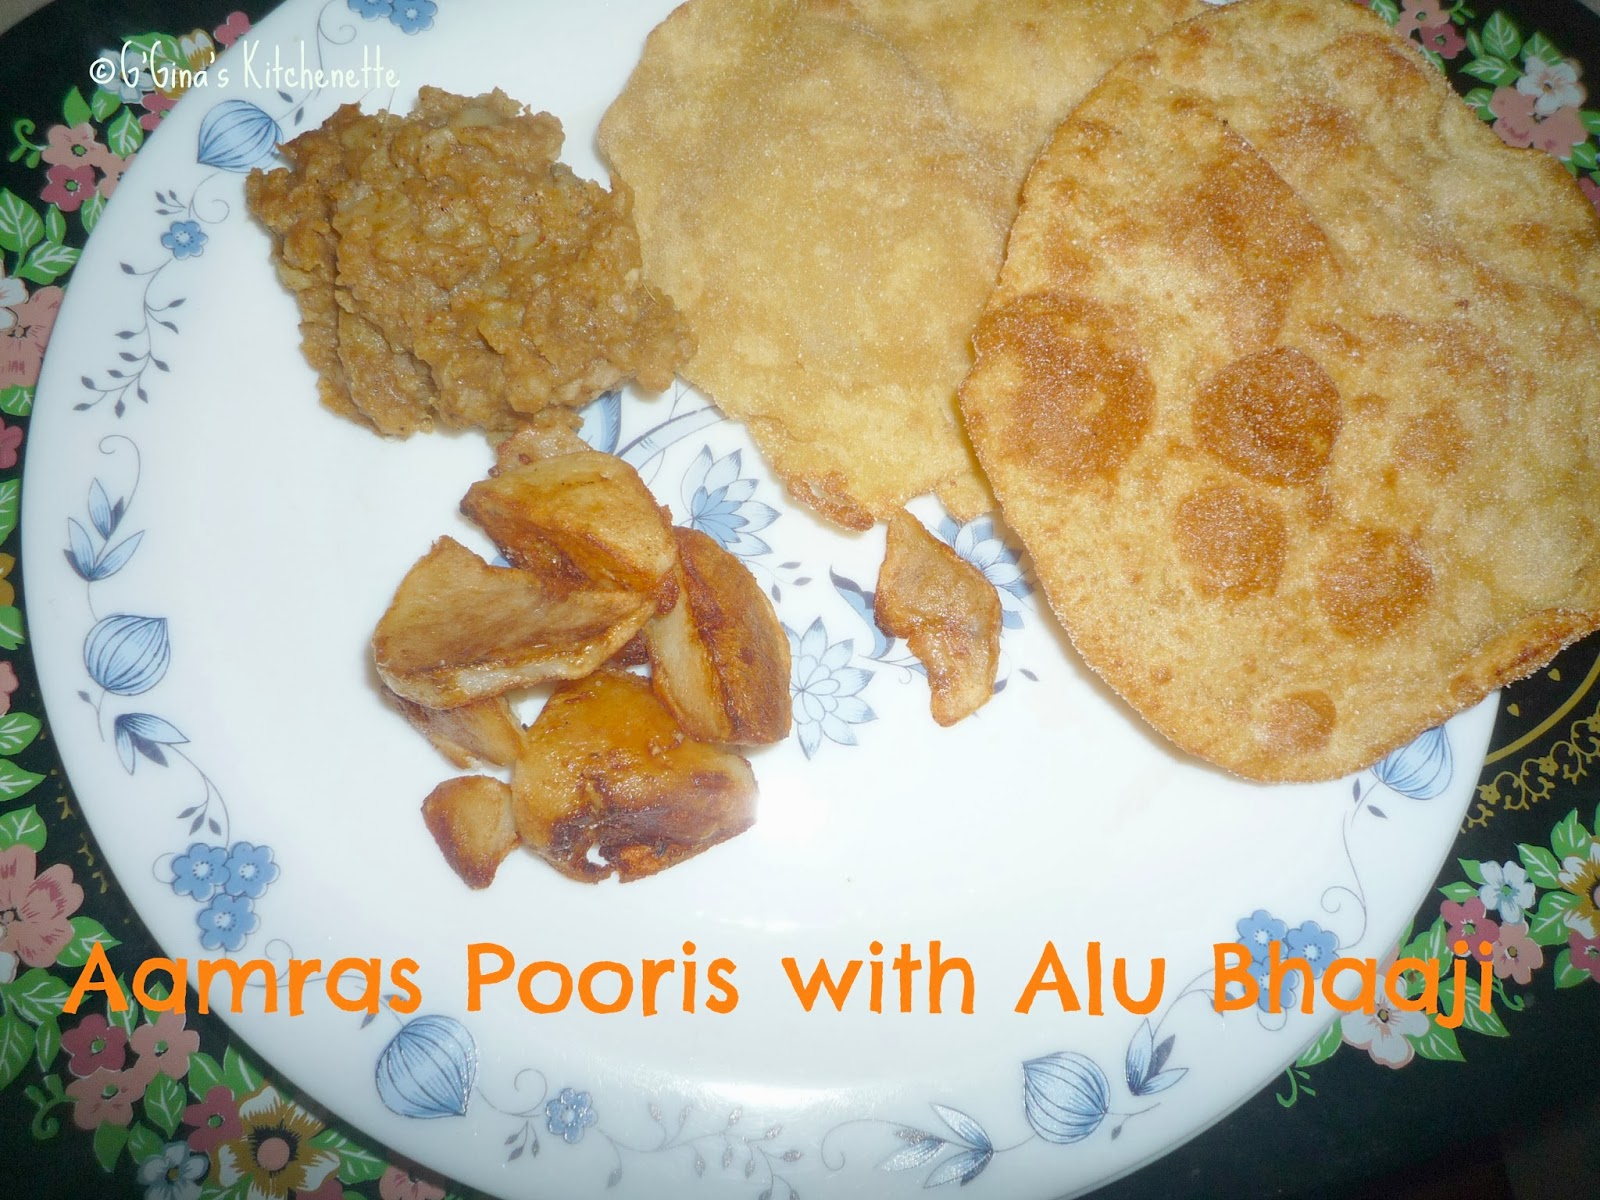 ... Alu Bhaaji (Fried Mango-pulp Indian bread with spiced Potato mash